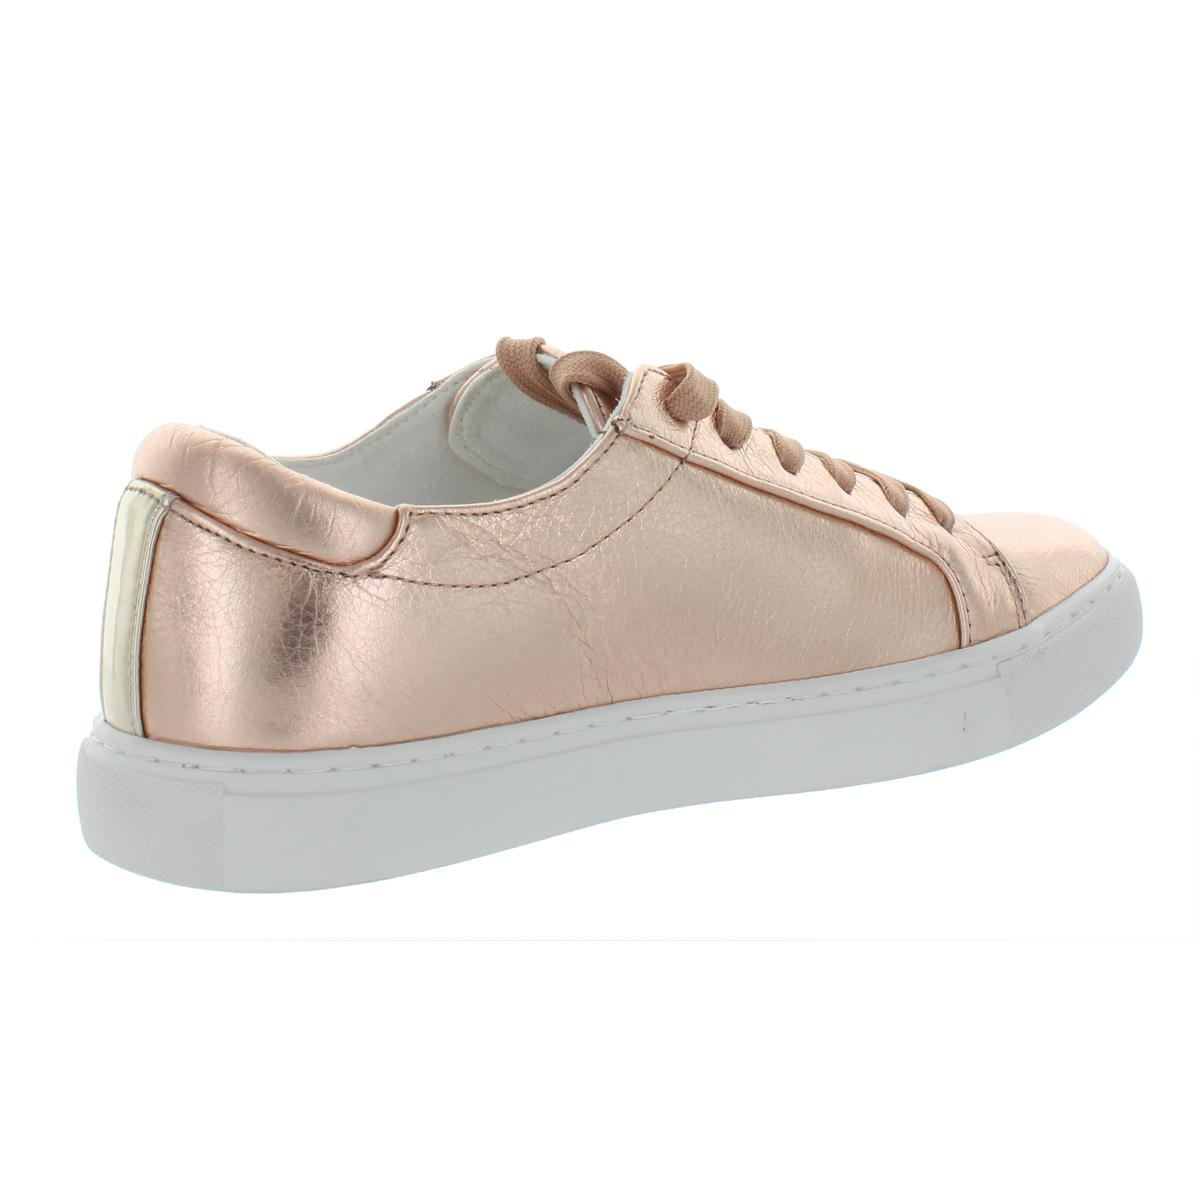 Kenneth-Cole-New-York-Womens-Kam-Techni-Cole-Casual-Shoes-Sneakers-BHFO-2617 thumbnail 4